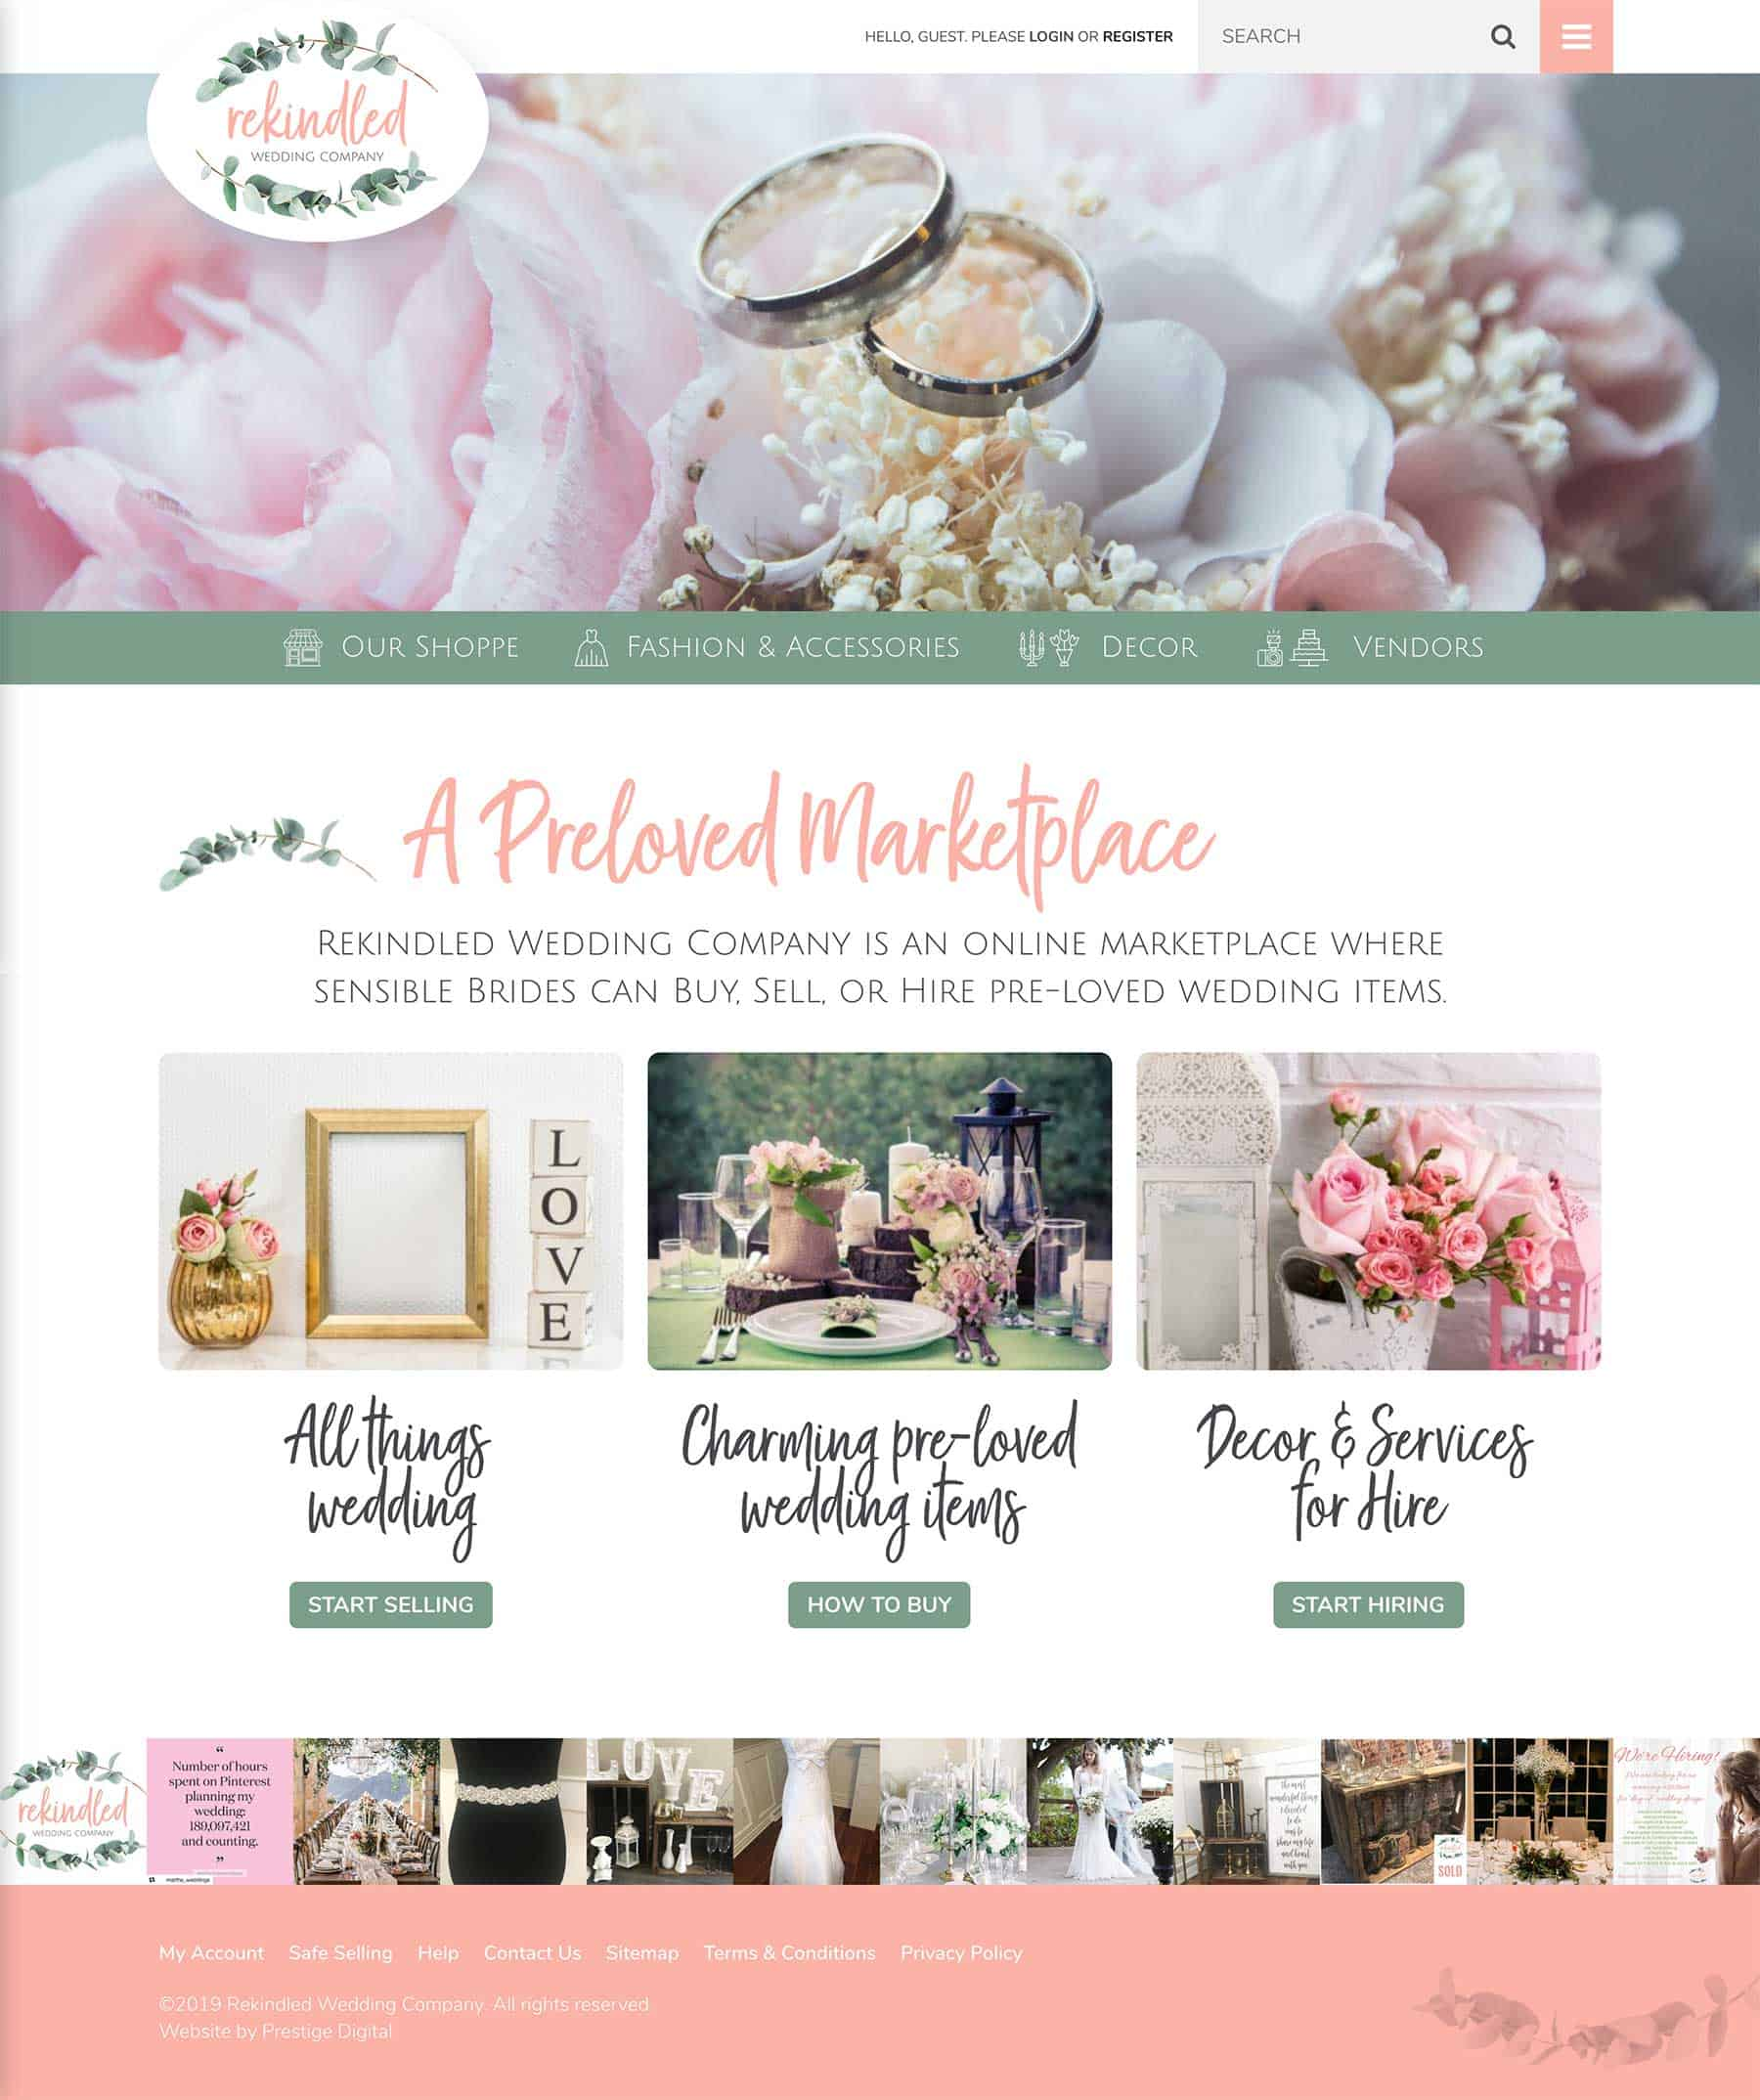 Rekindled Wedding Company Prestige Digital